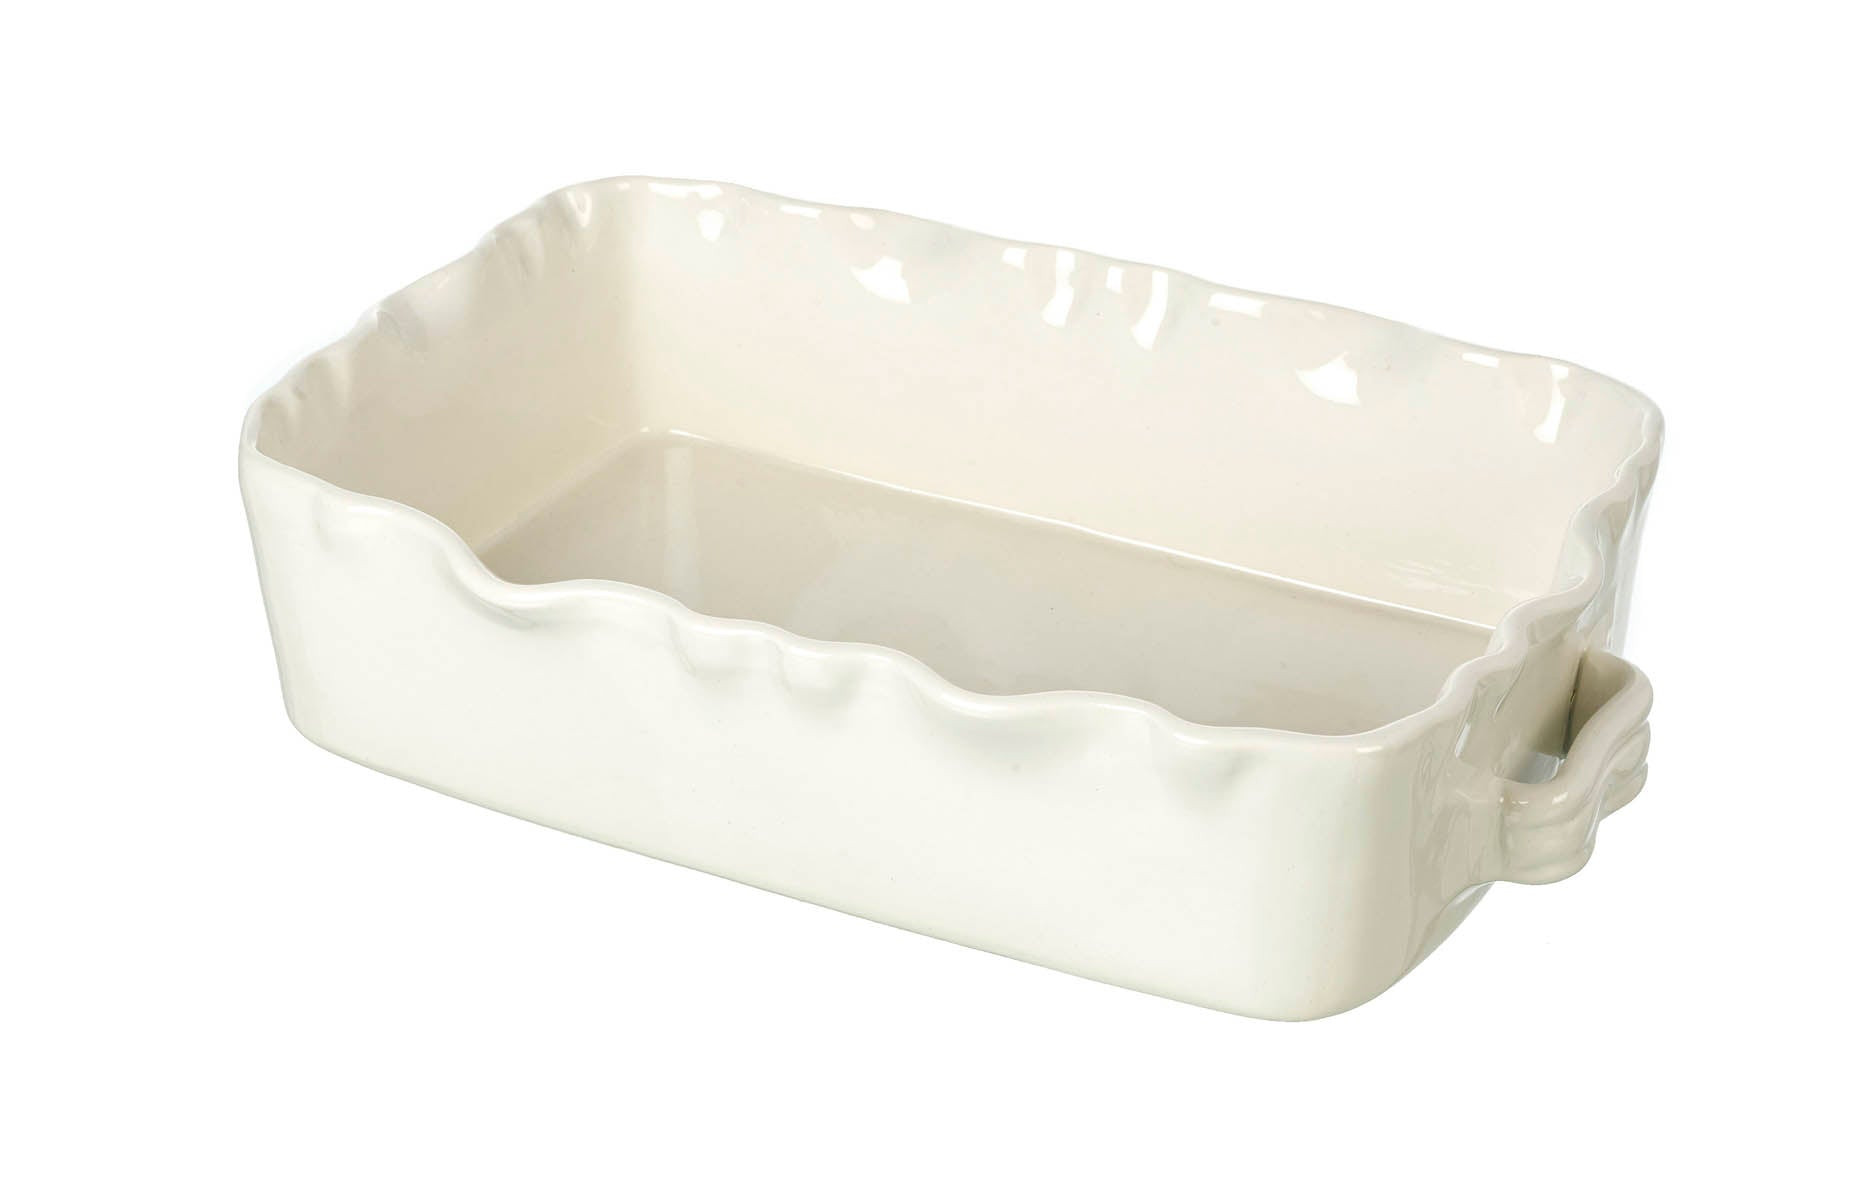 Cream Oven to Table Rectangular Baking Dish, L